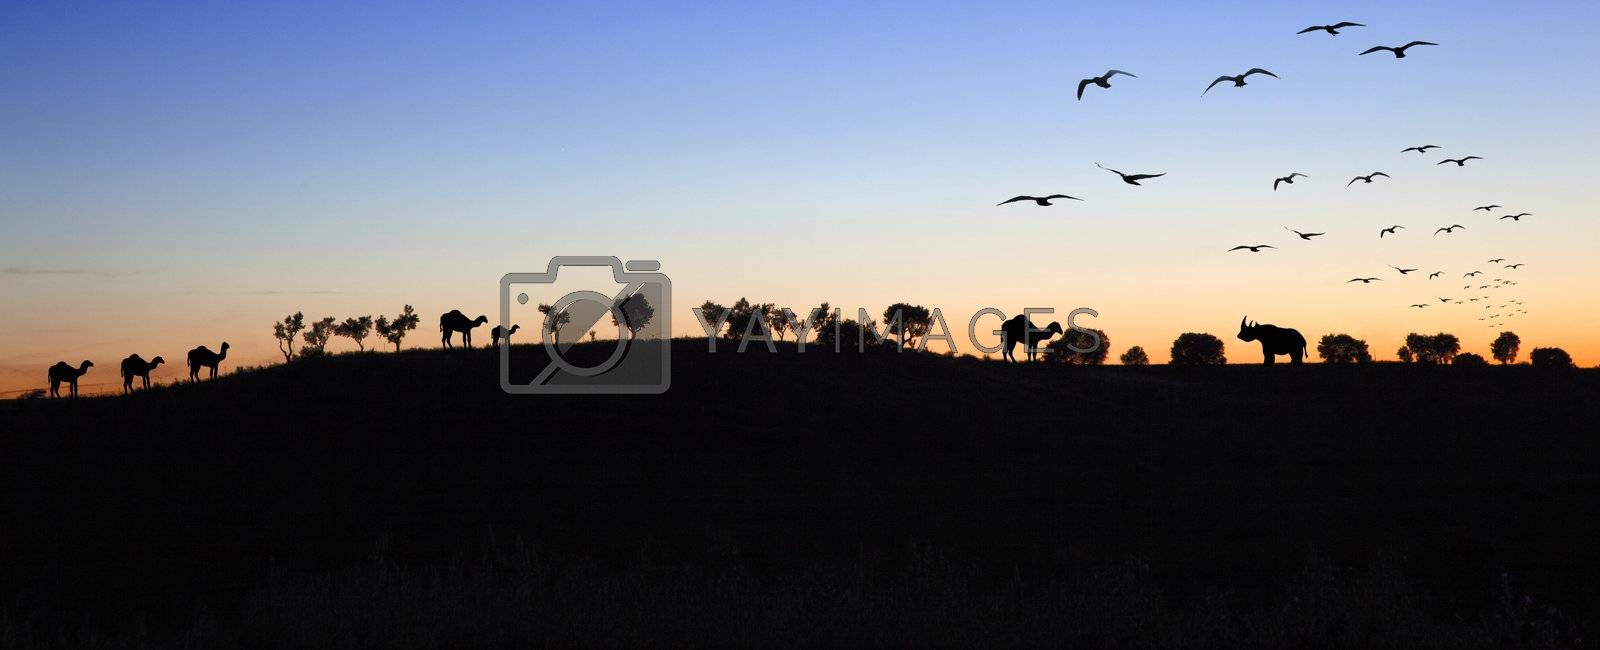 Sunset landscape with silhouettes of animals and trees